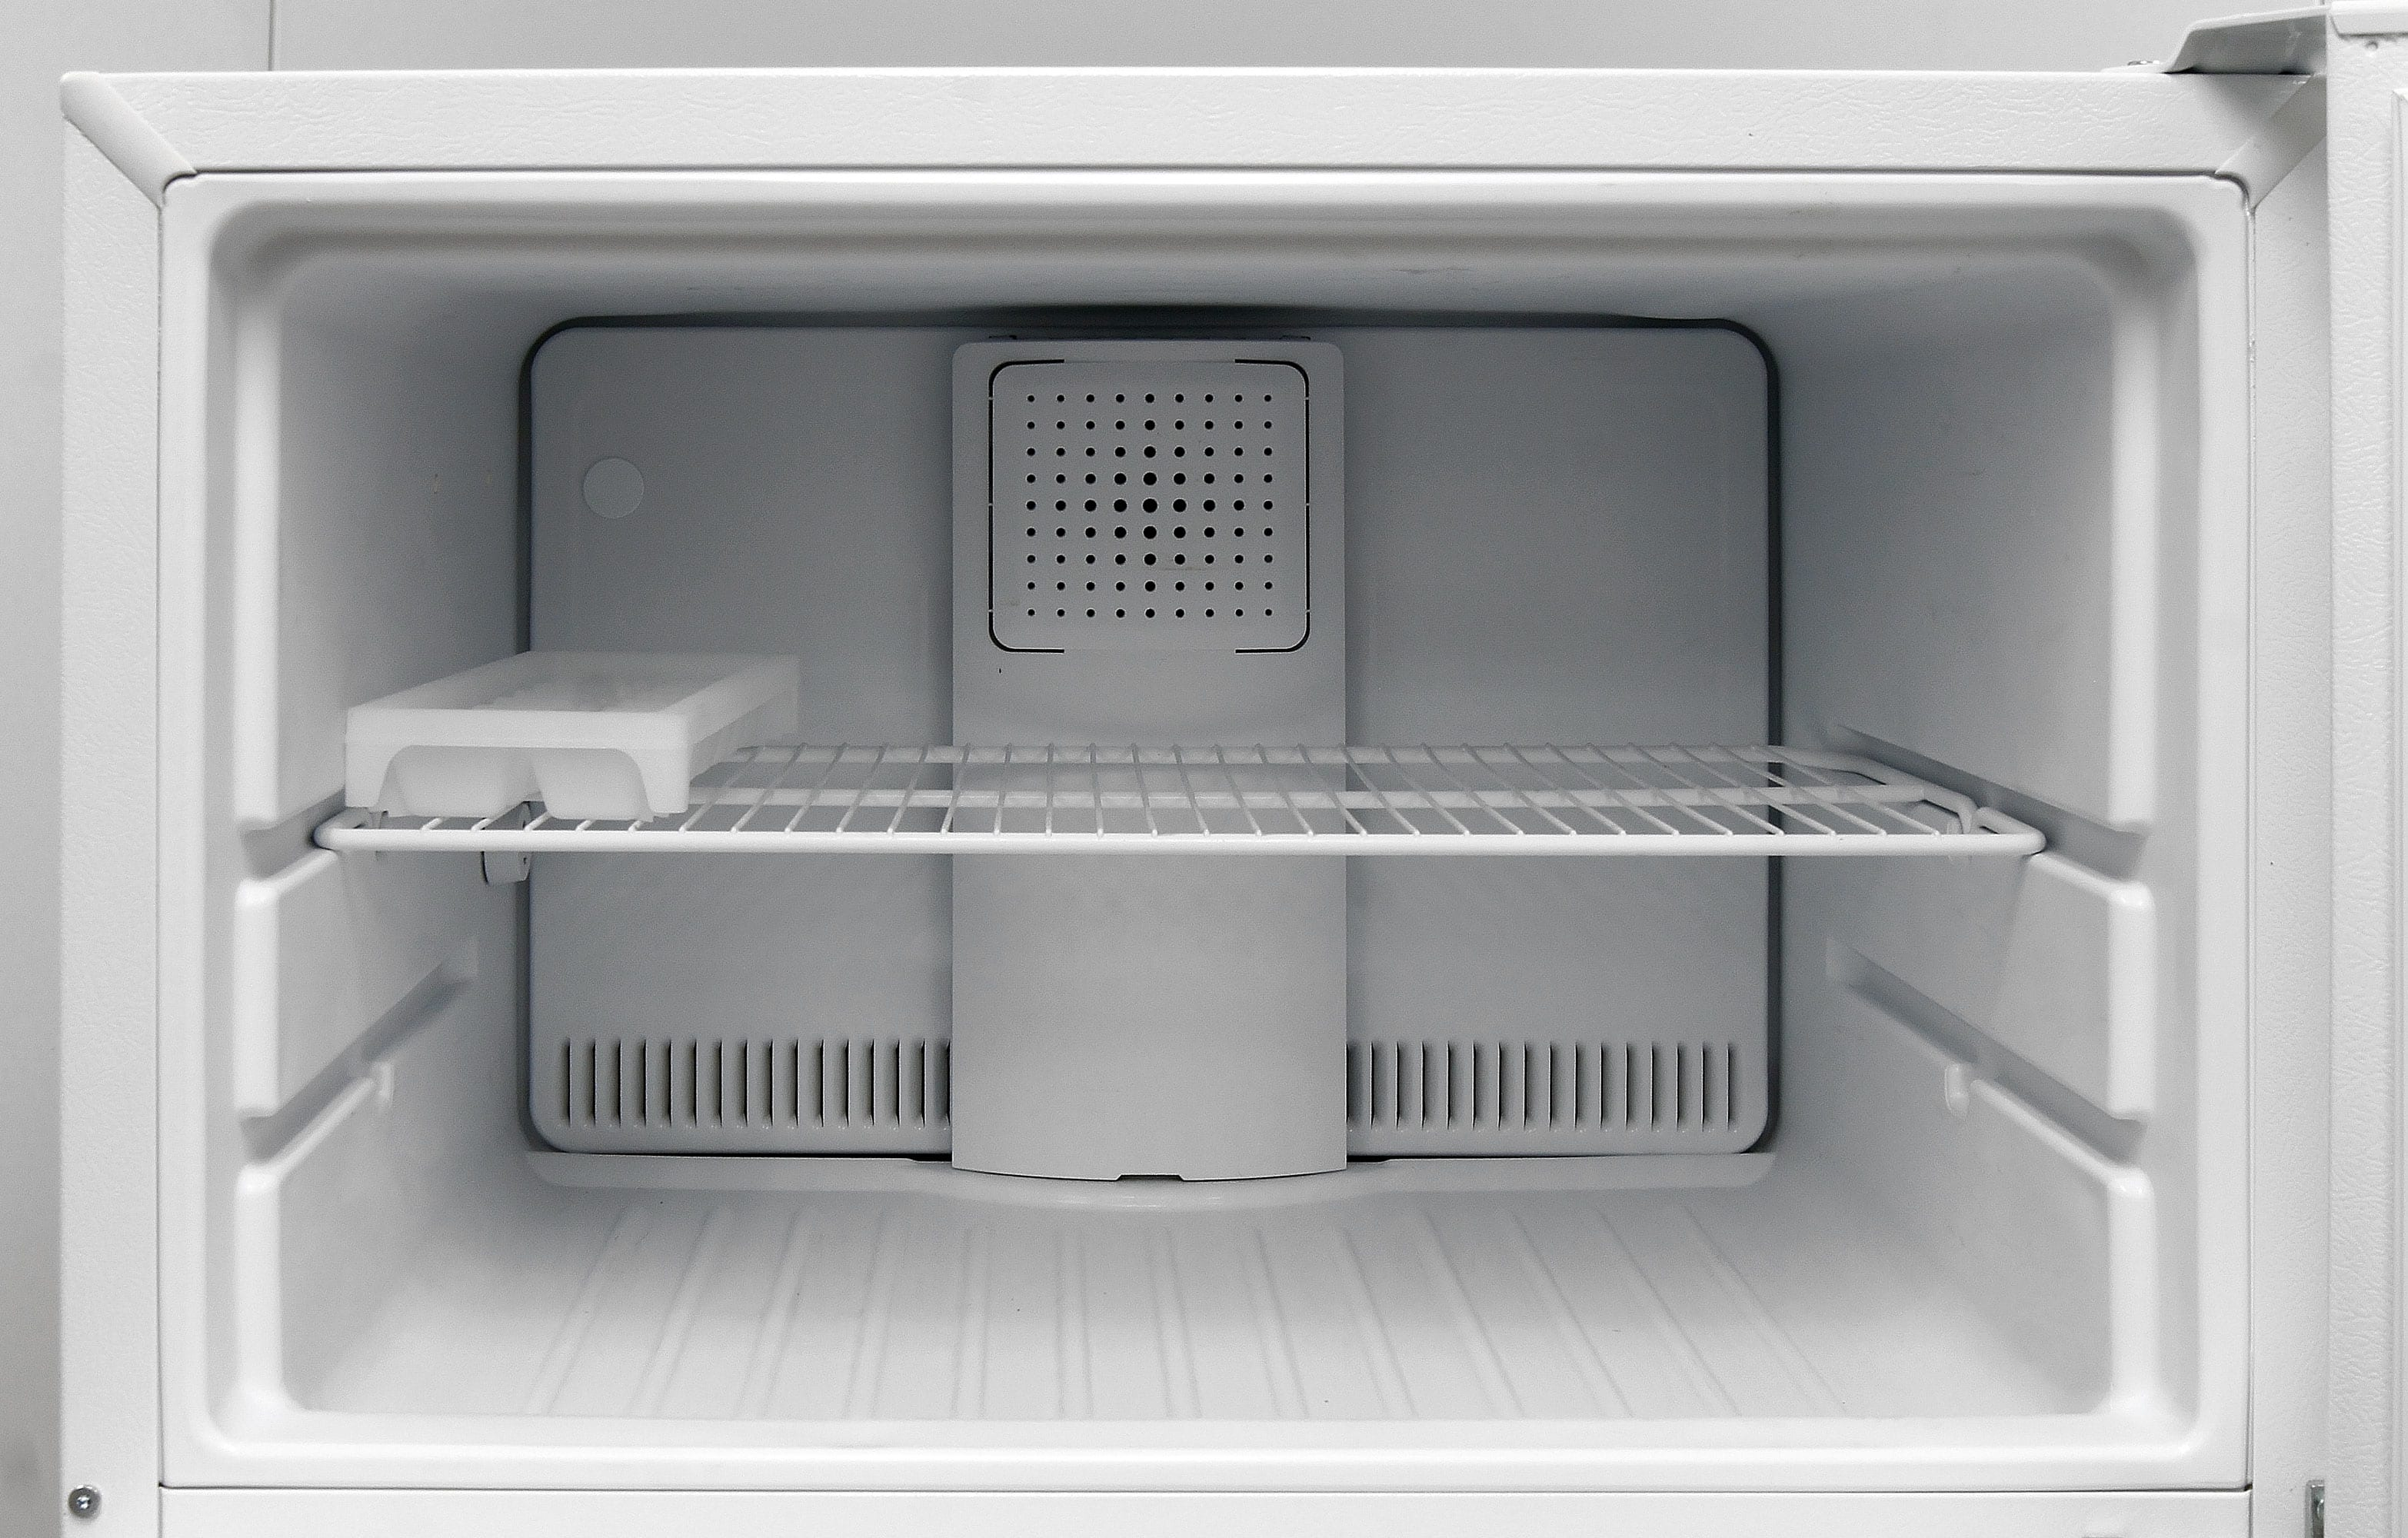 Without an icemaker in the GE GTS16DTHWW, you can move the wire shelf around as you see fit.